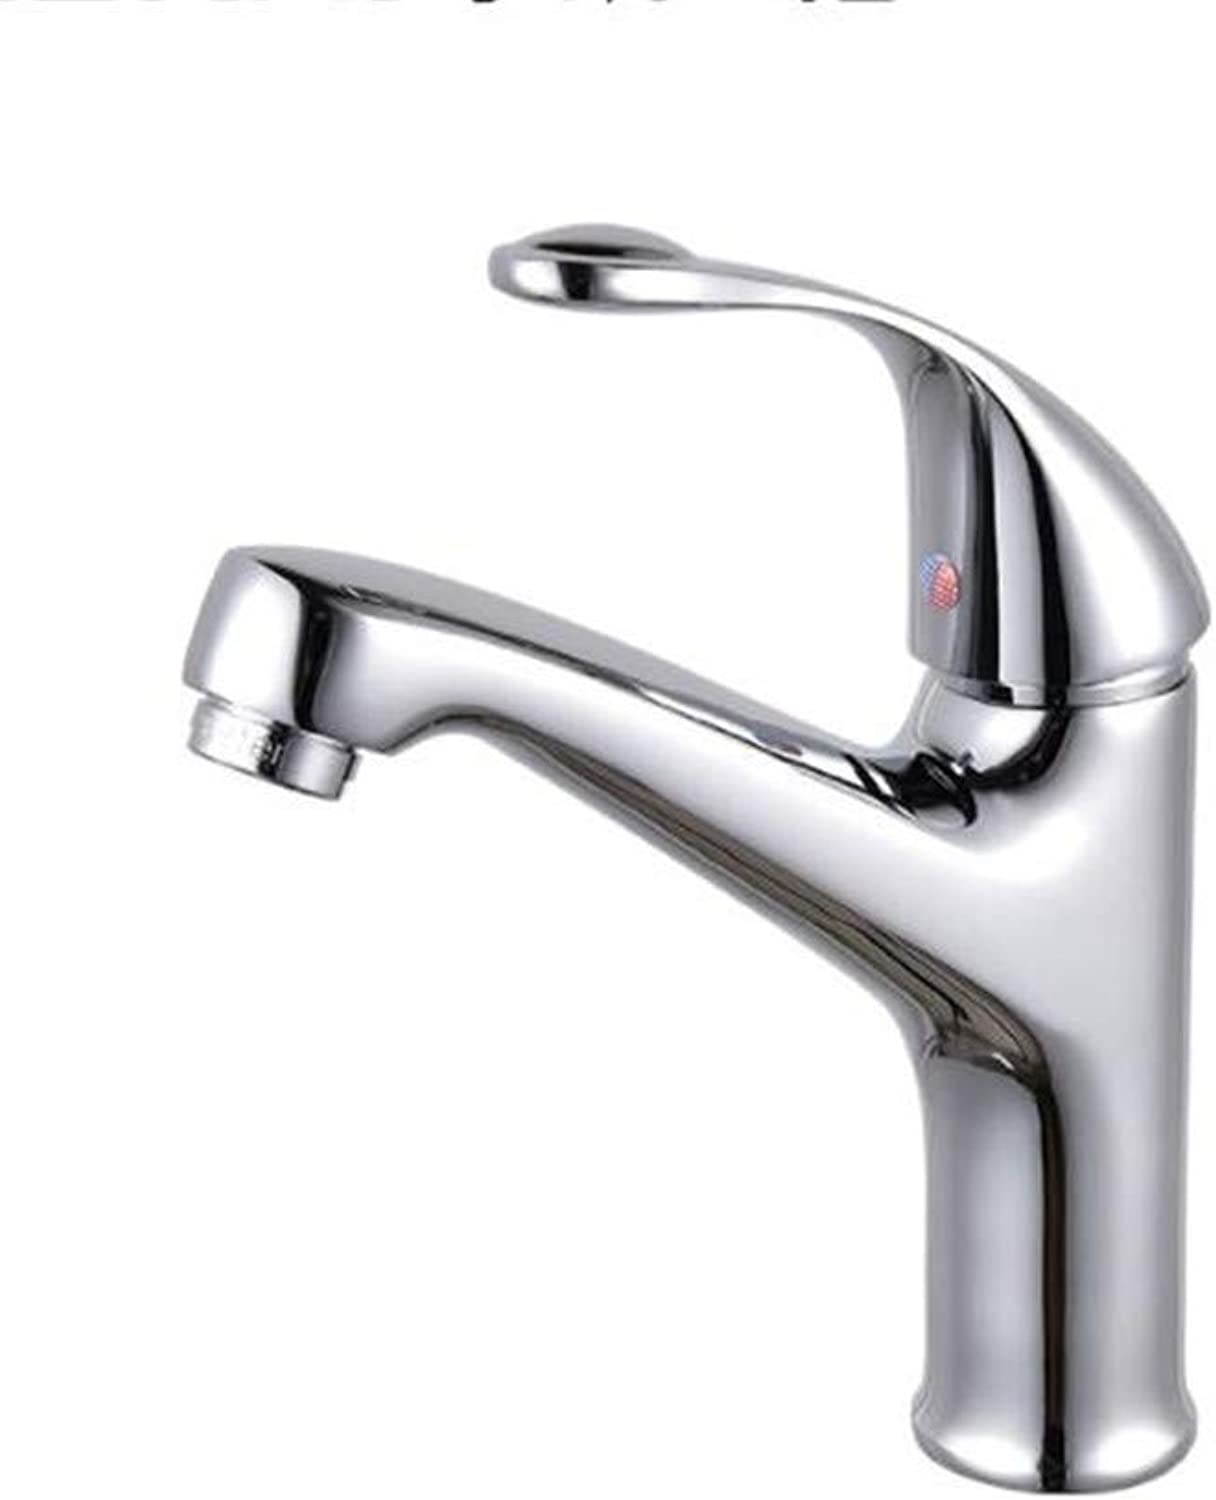 Bathroom Sink Basin Lever Mixer Tap greenical Lifting Cold and Hot Single-Hole and Double-Hole Vegetable Basin Faucet Single-Connection Cold and Hot Mixing Surface Basin Faucet